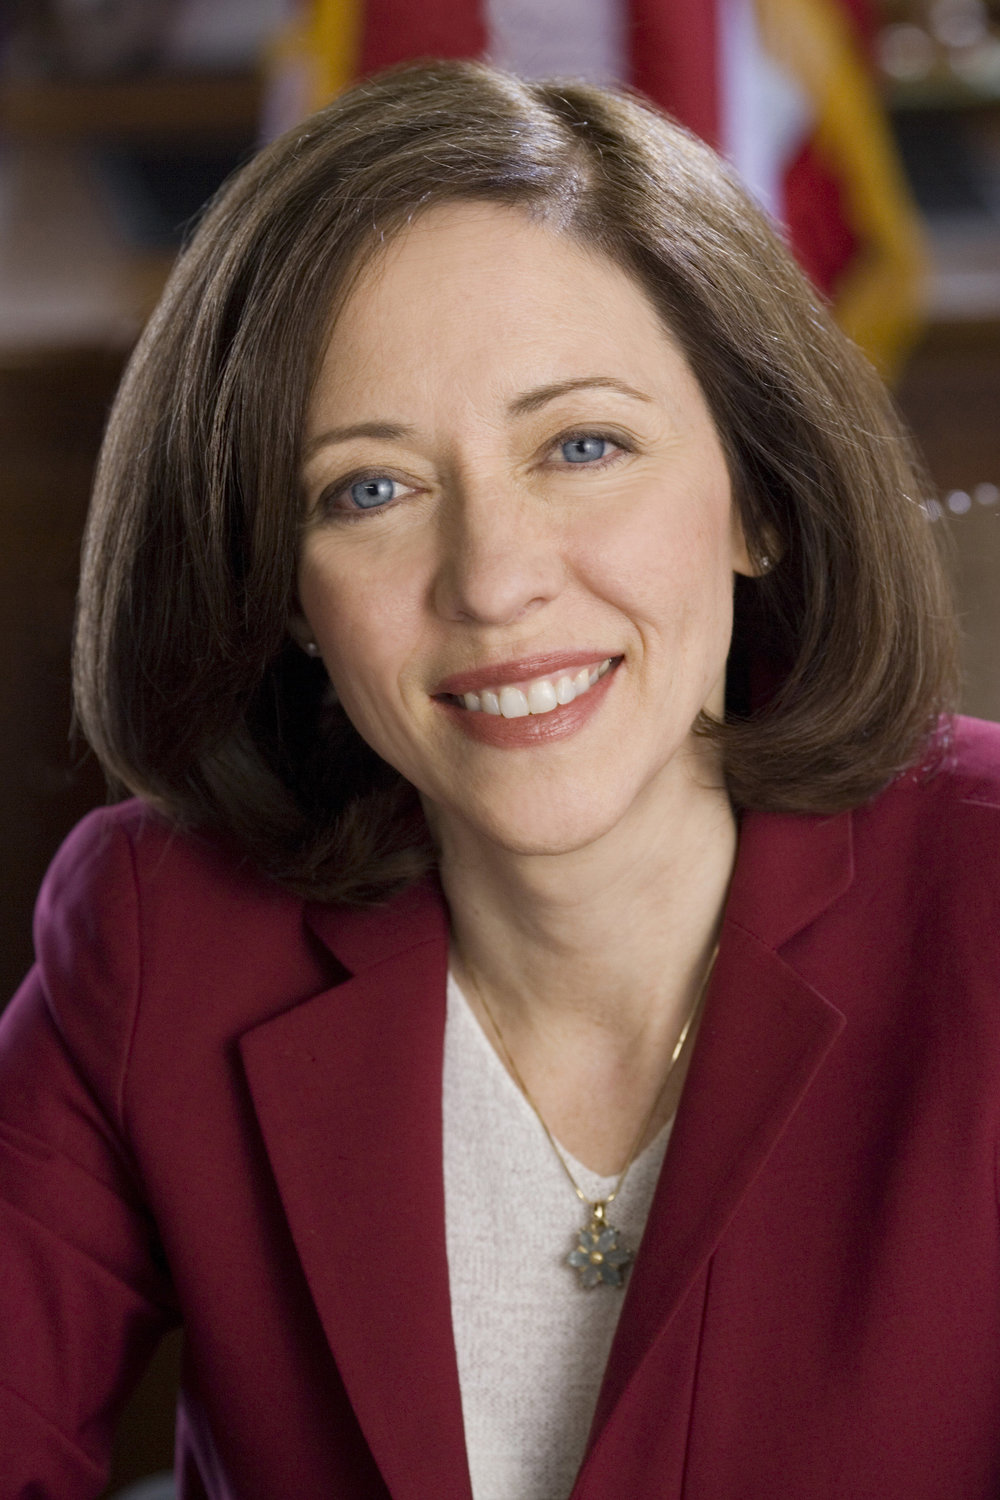 SenatorMaria Cantwell -  2930 WETMORE AVENUE, SUITE 9B, EVERETT, WA 98201 :: PHONE ::EVERETT: (425) 303-0114SEATTLE : (206) 220-6400DC: (202) 224-3441